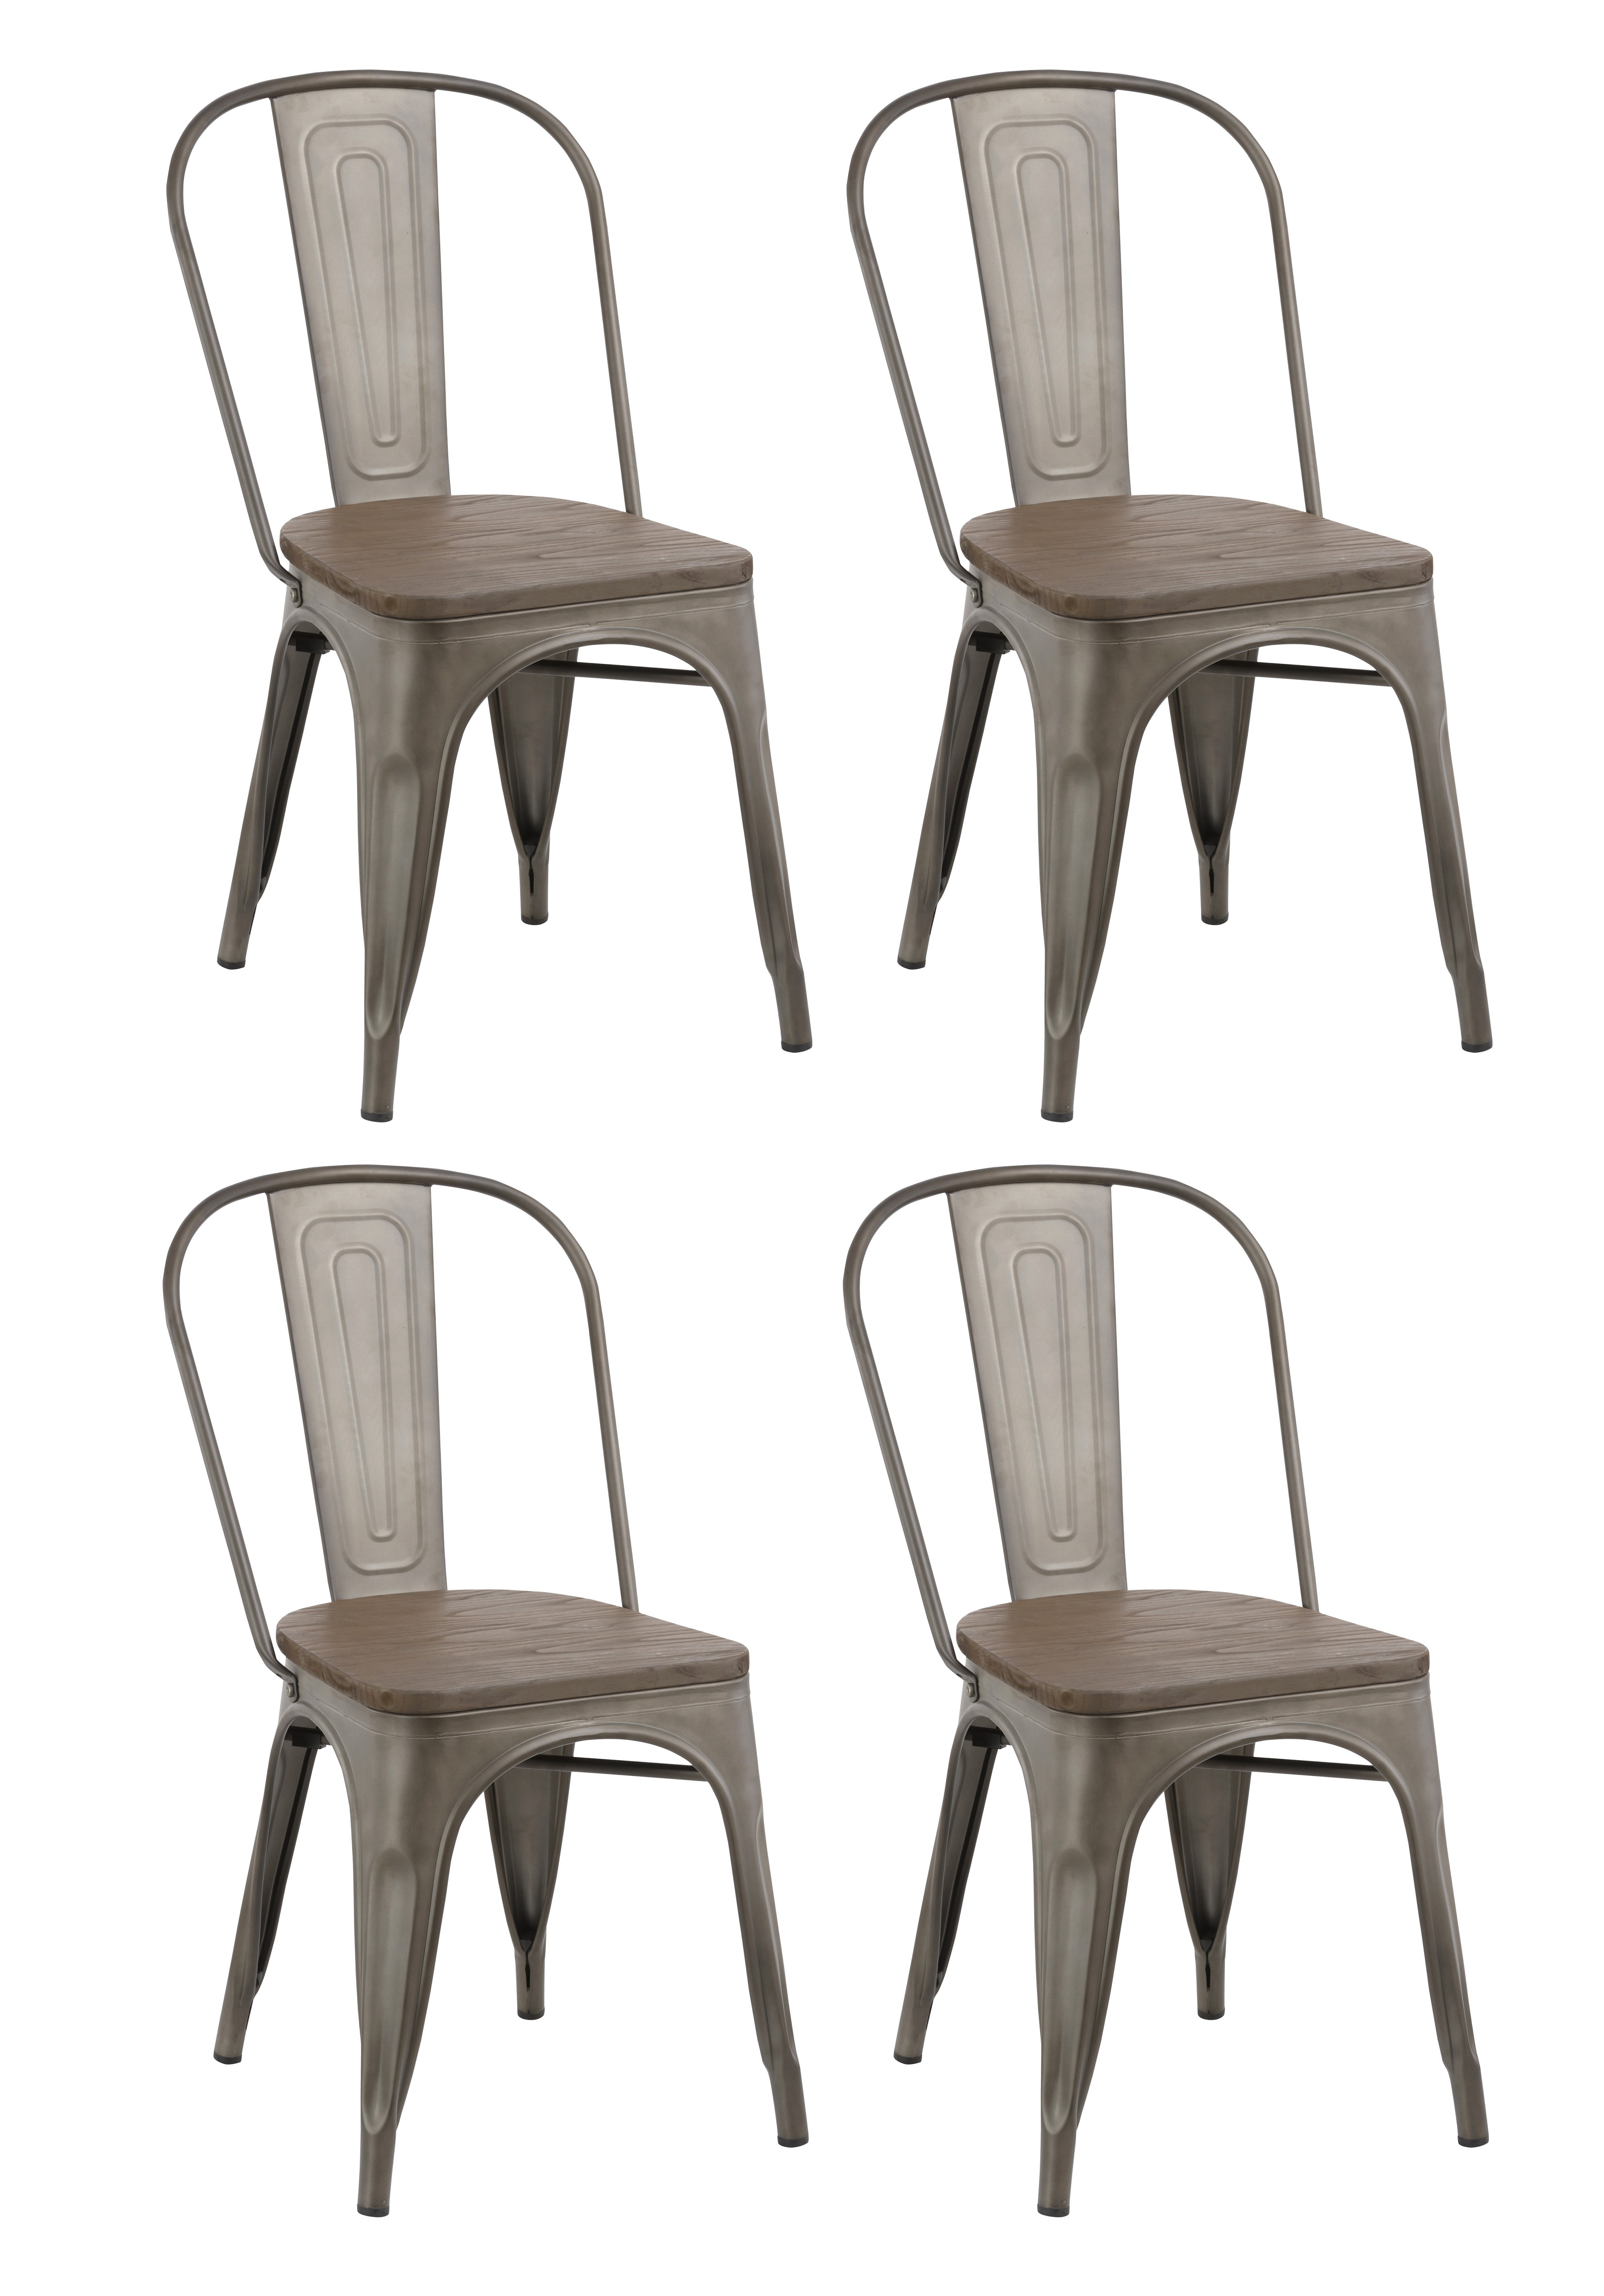 rustic metal dining chairs lafuma anti gravity chair btexpert industrial vintage tabouret antique copper